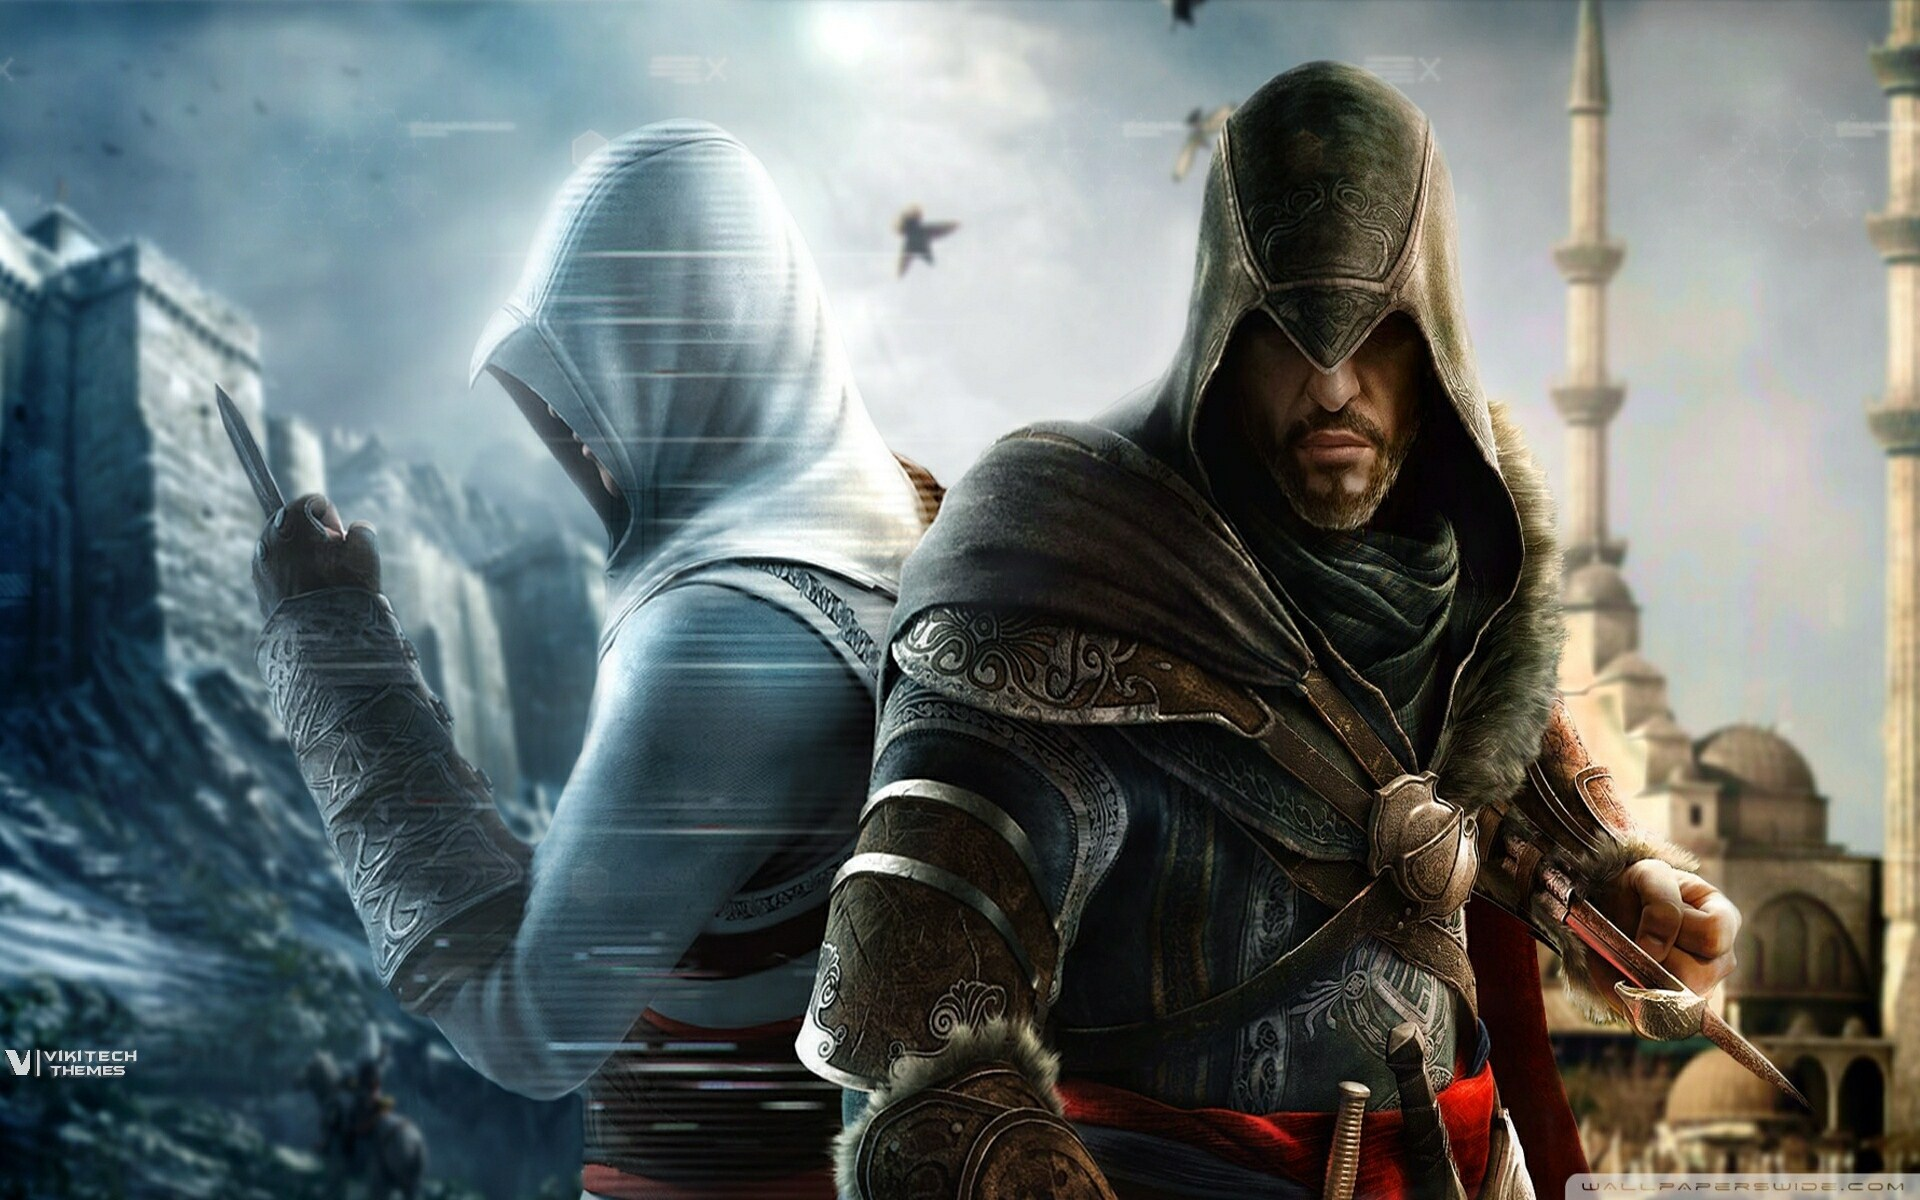 Revelation-HD | Assassins Creed Fans